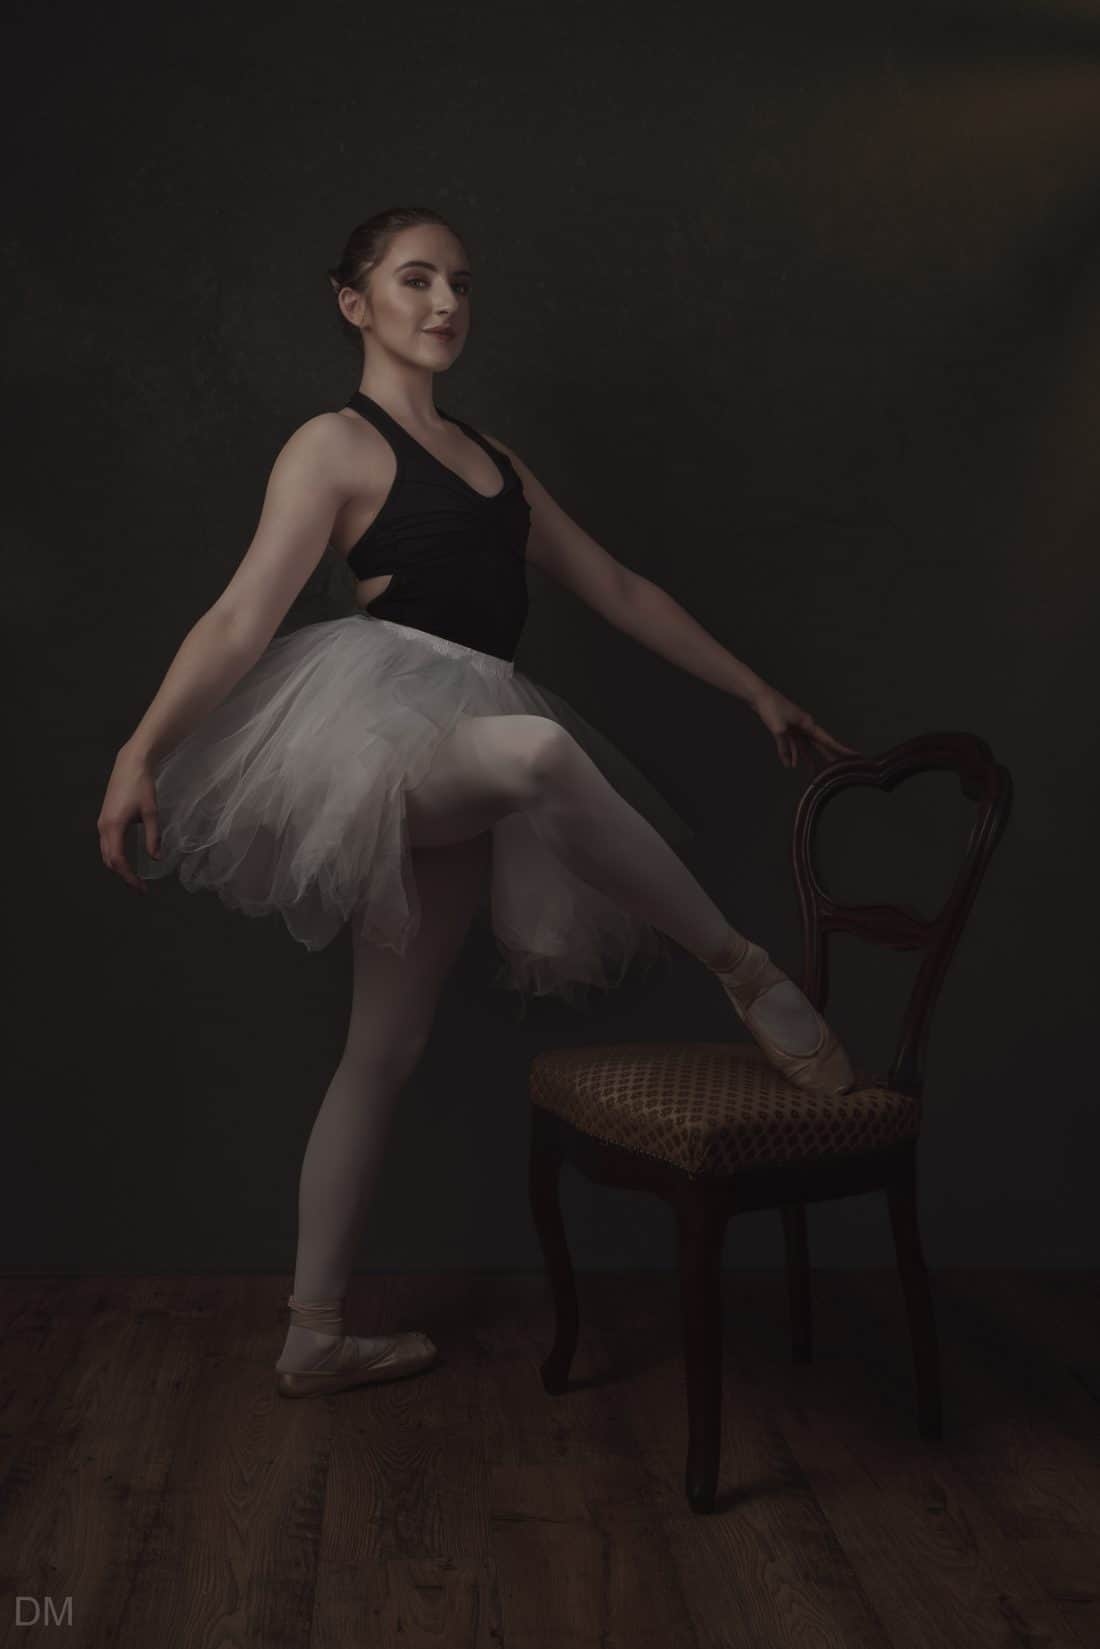 Photograph of a female ballerina wearing a tutu